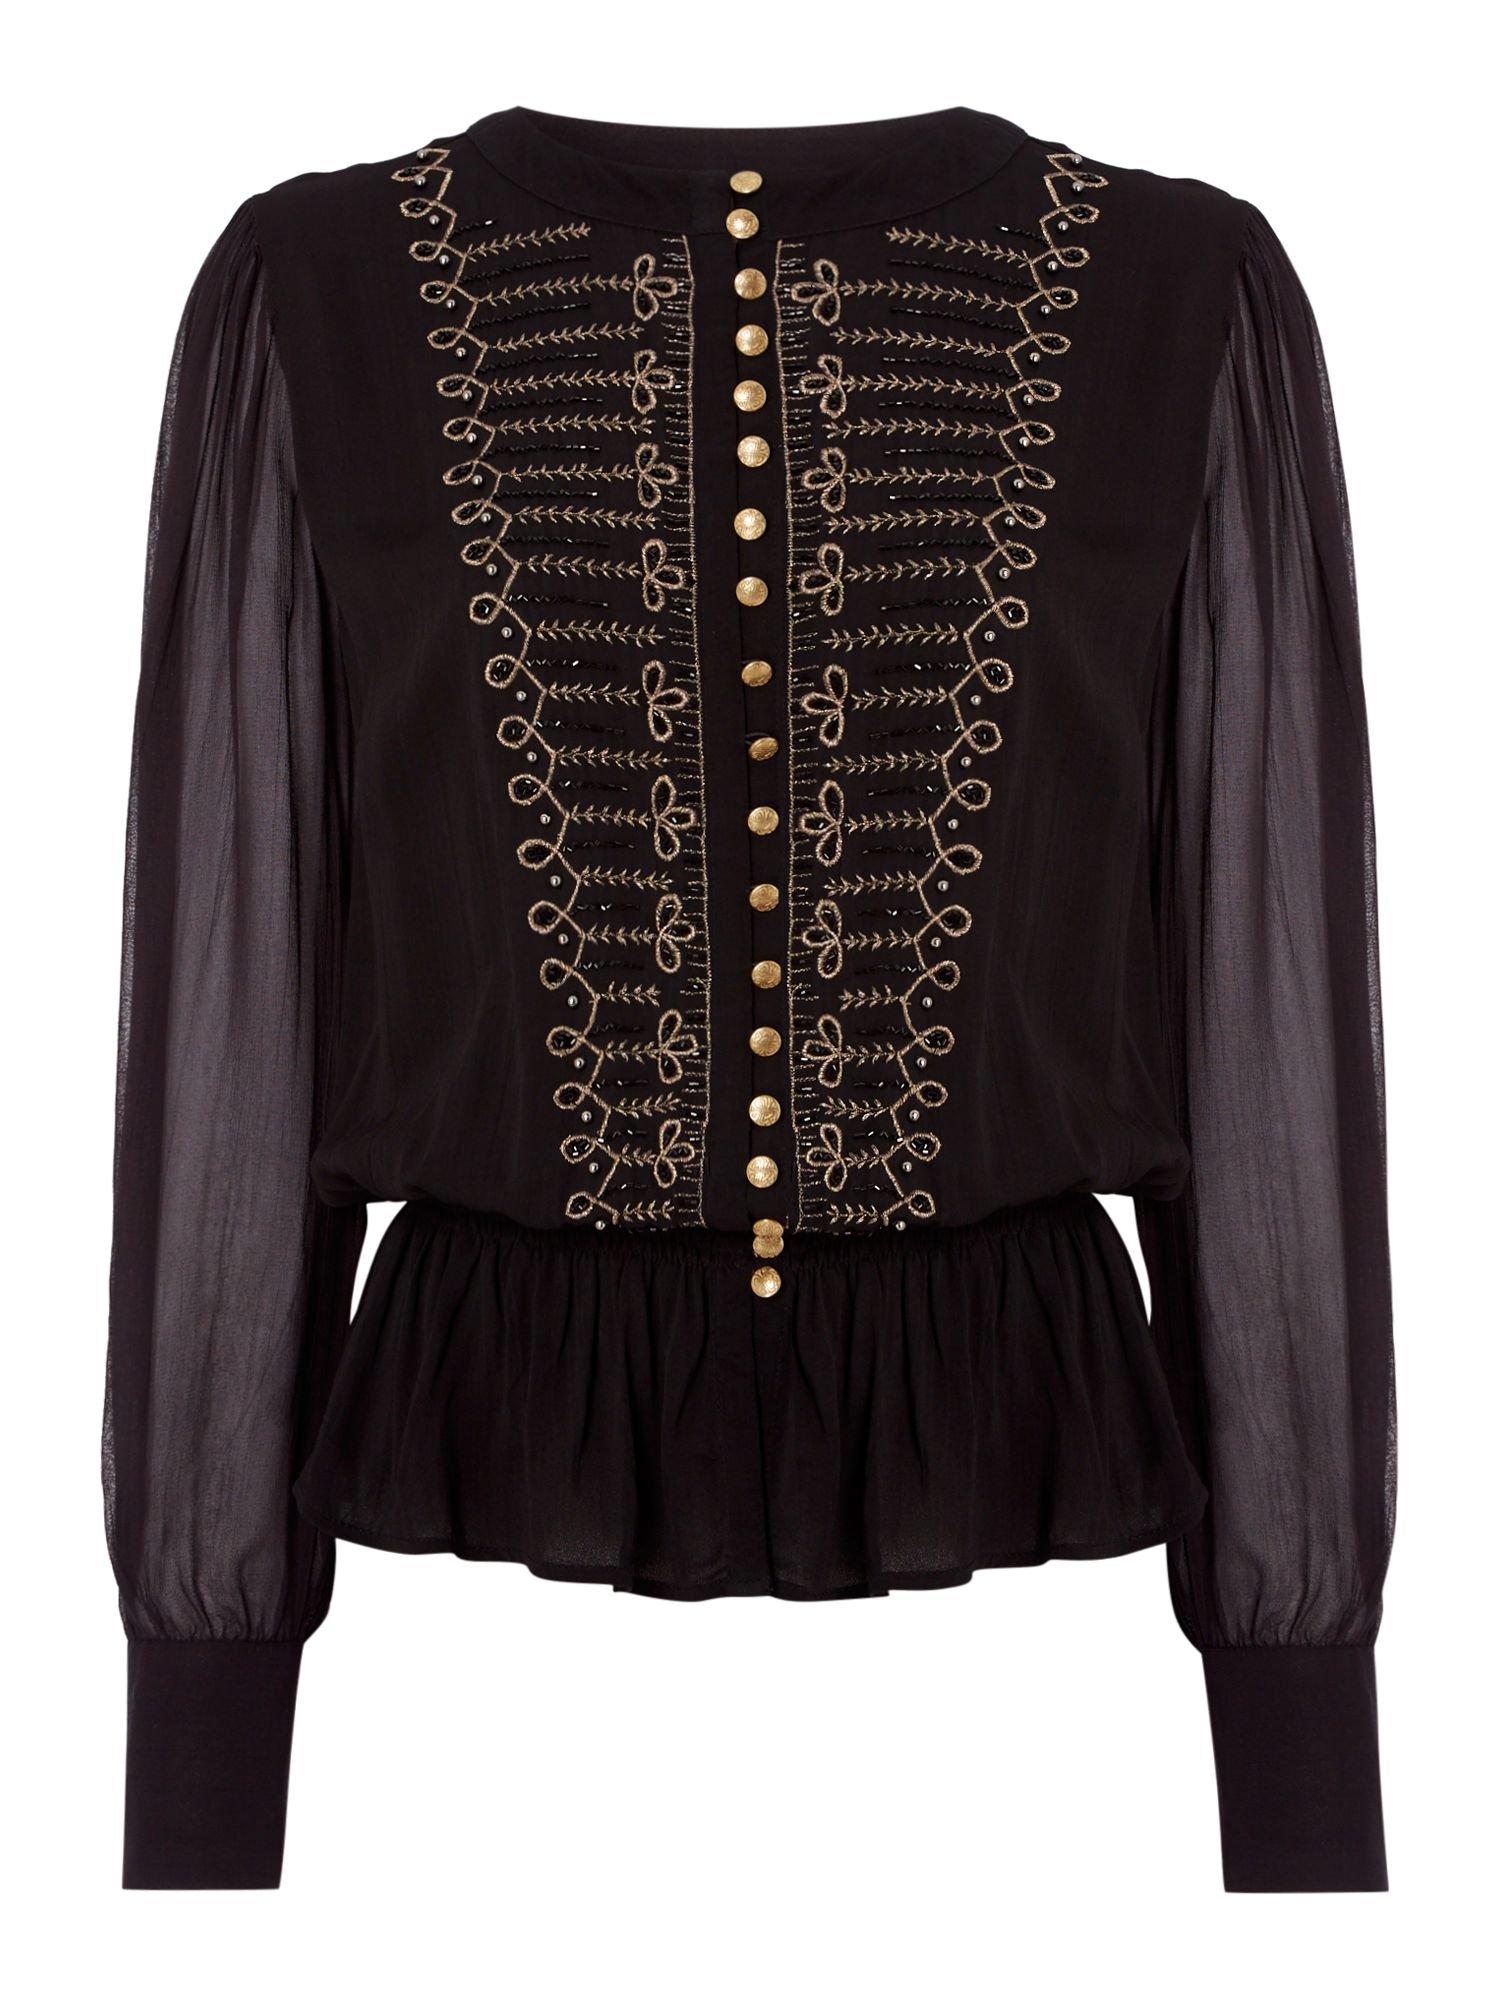 Biba Embellished drummer boy blouse, Black